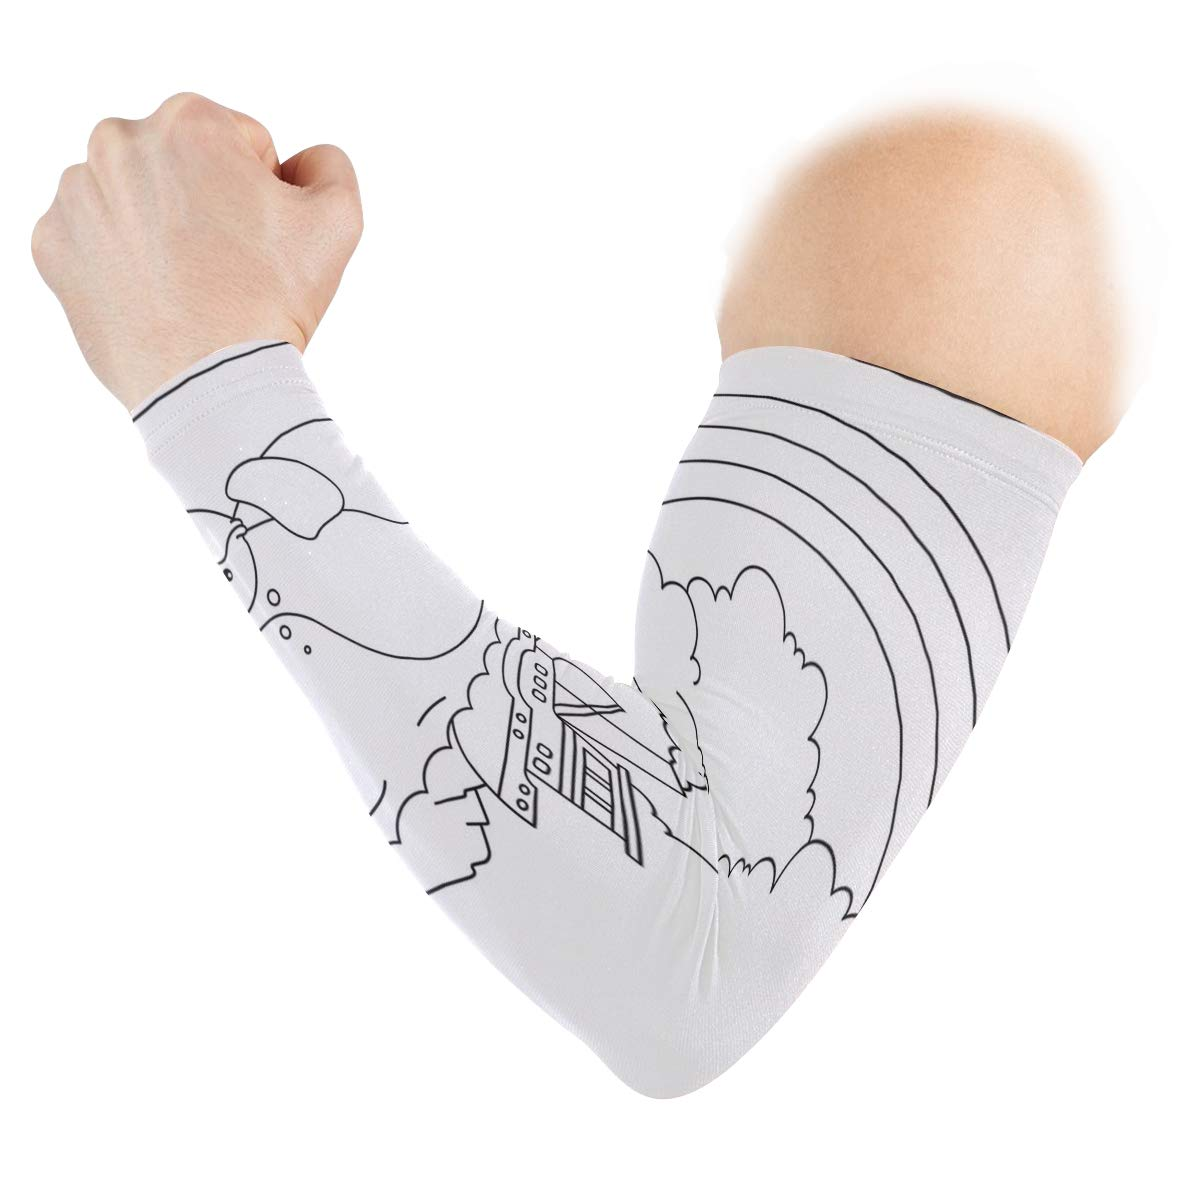 Arm Sleeves Various Cartoon Characters Background Man Baseball Long Cooling Sleeves Sun UV Compression Arm Covers